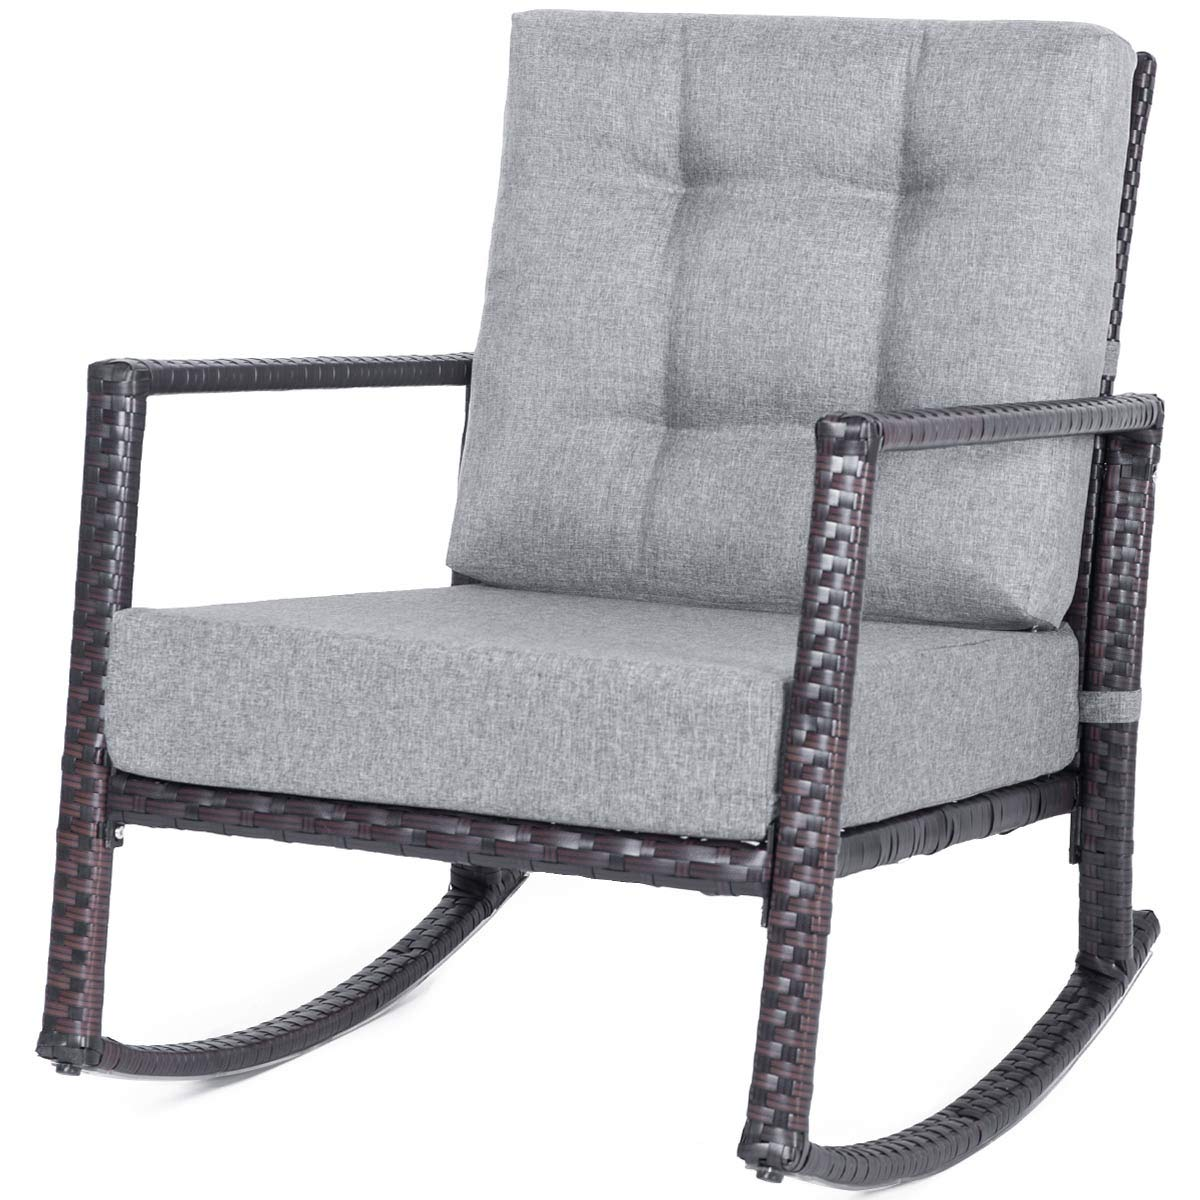 Peachy Merax Patio Chairs Outdoor Glider Rattan Rocker Chair Wicker Rocking Chairs With Grey Cushions For Porch Garden Lawn Deck Machost Co Dining Chair Design Ideas Machostcouk